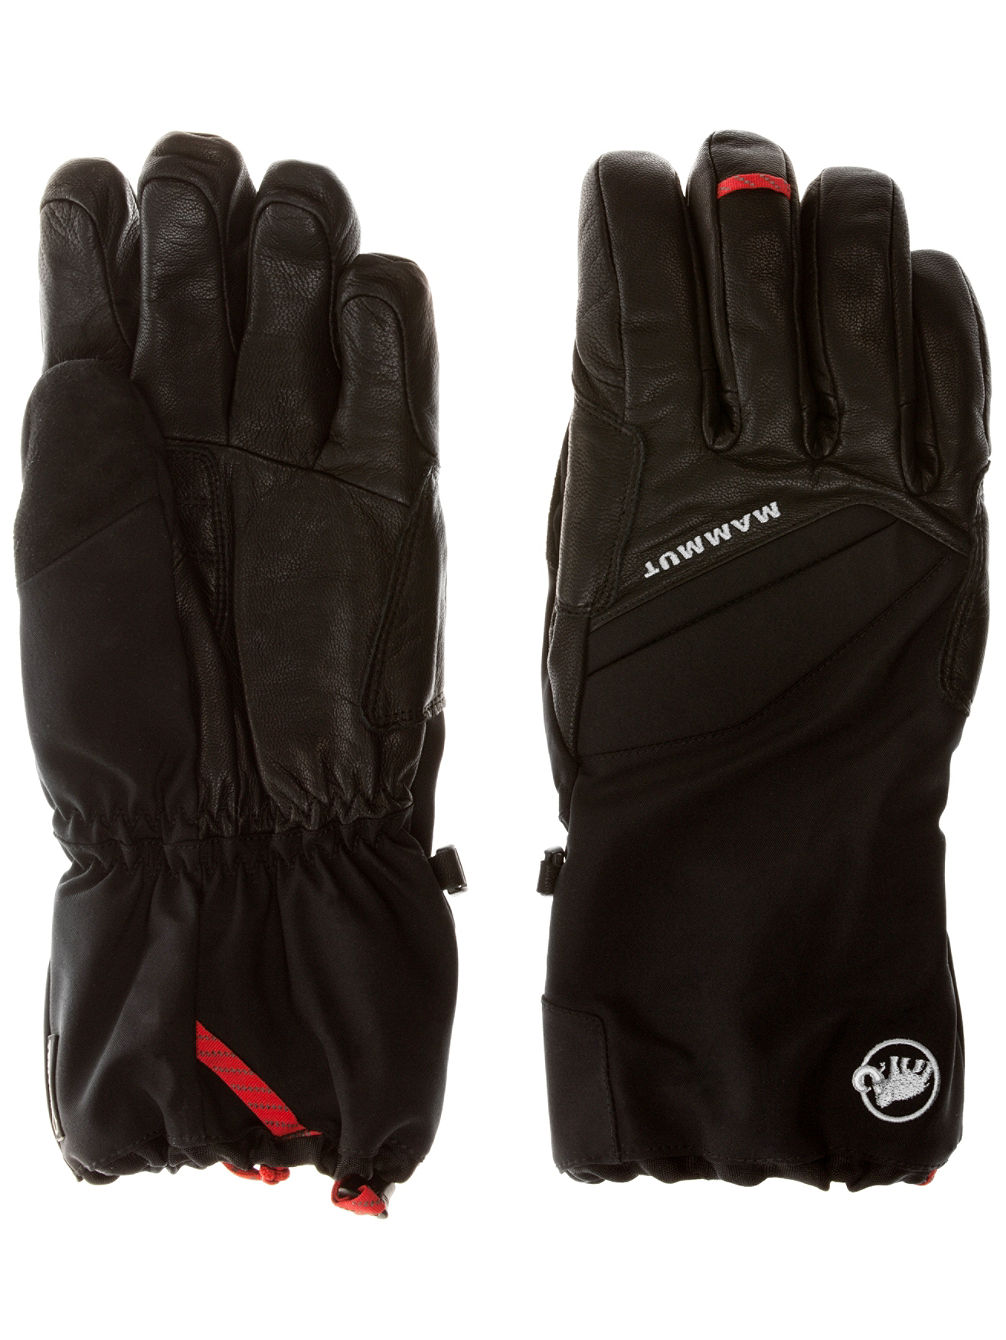 Meron Thermo 2 In 1 Handschuhe